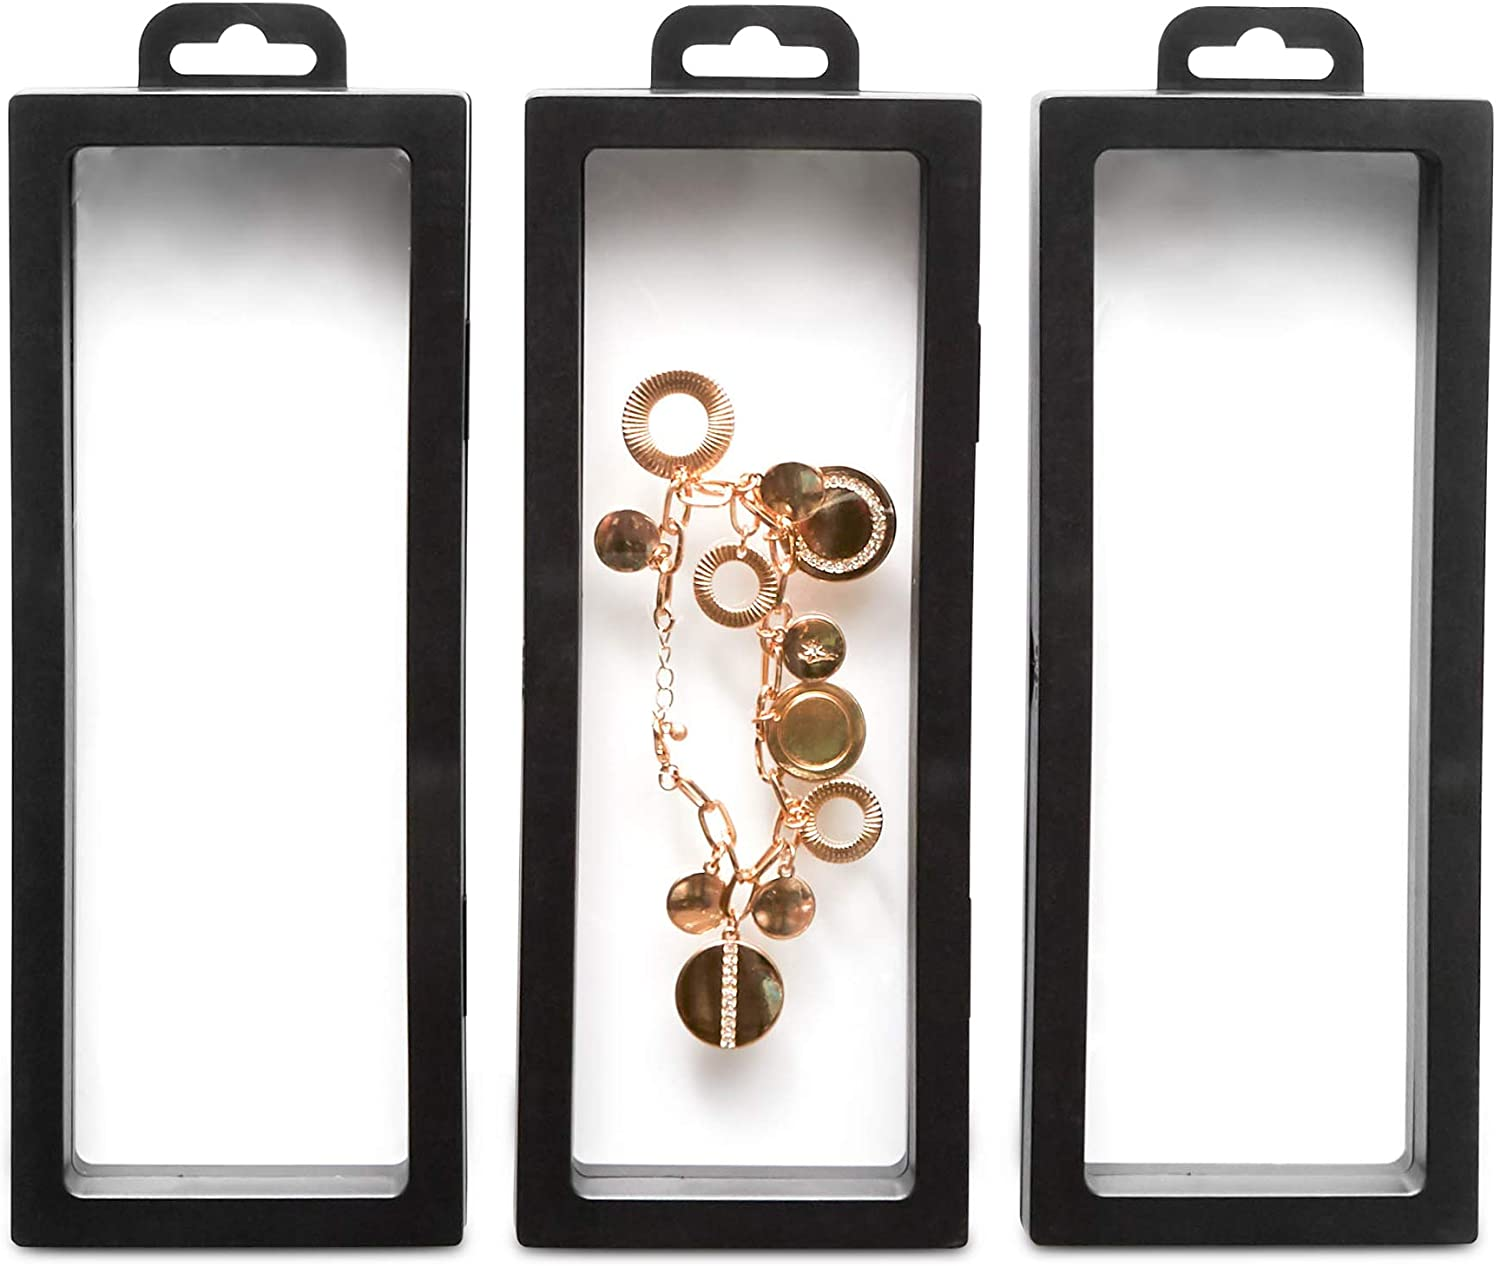 Juvale 3-D Floating Display Case with Hang Hook, 3 Pieces, Black